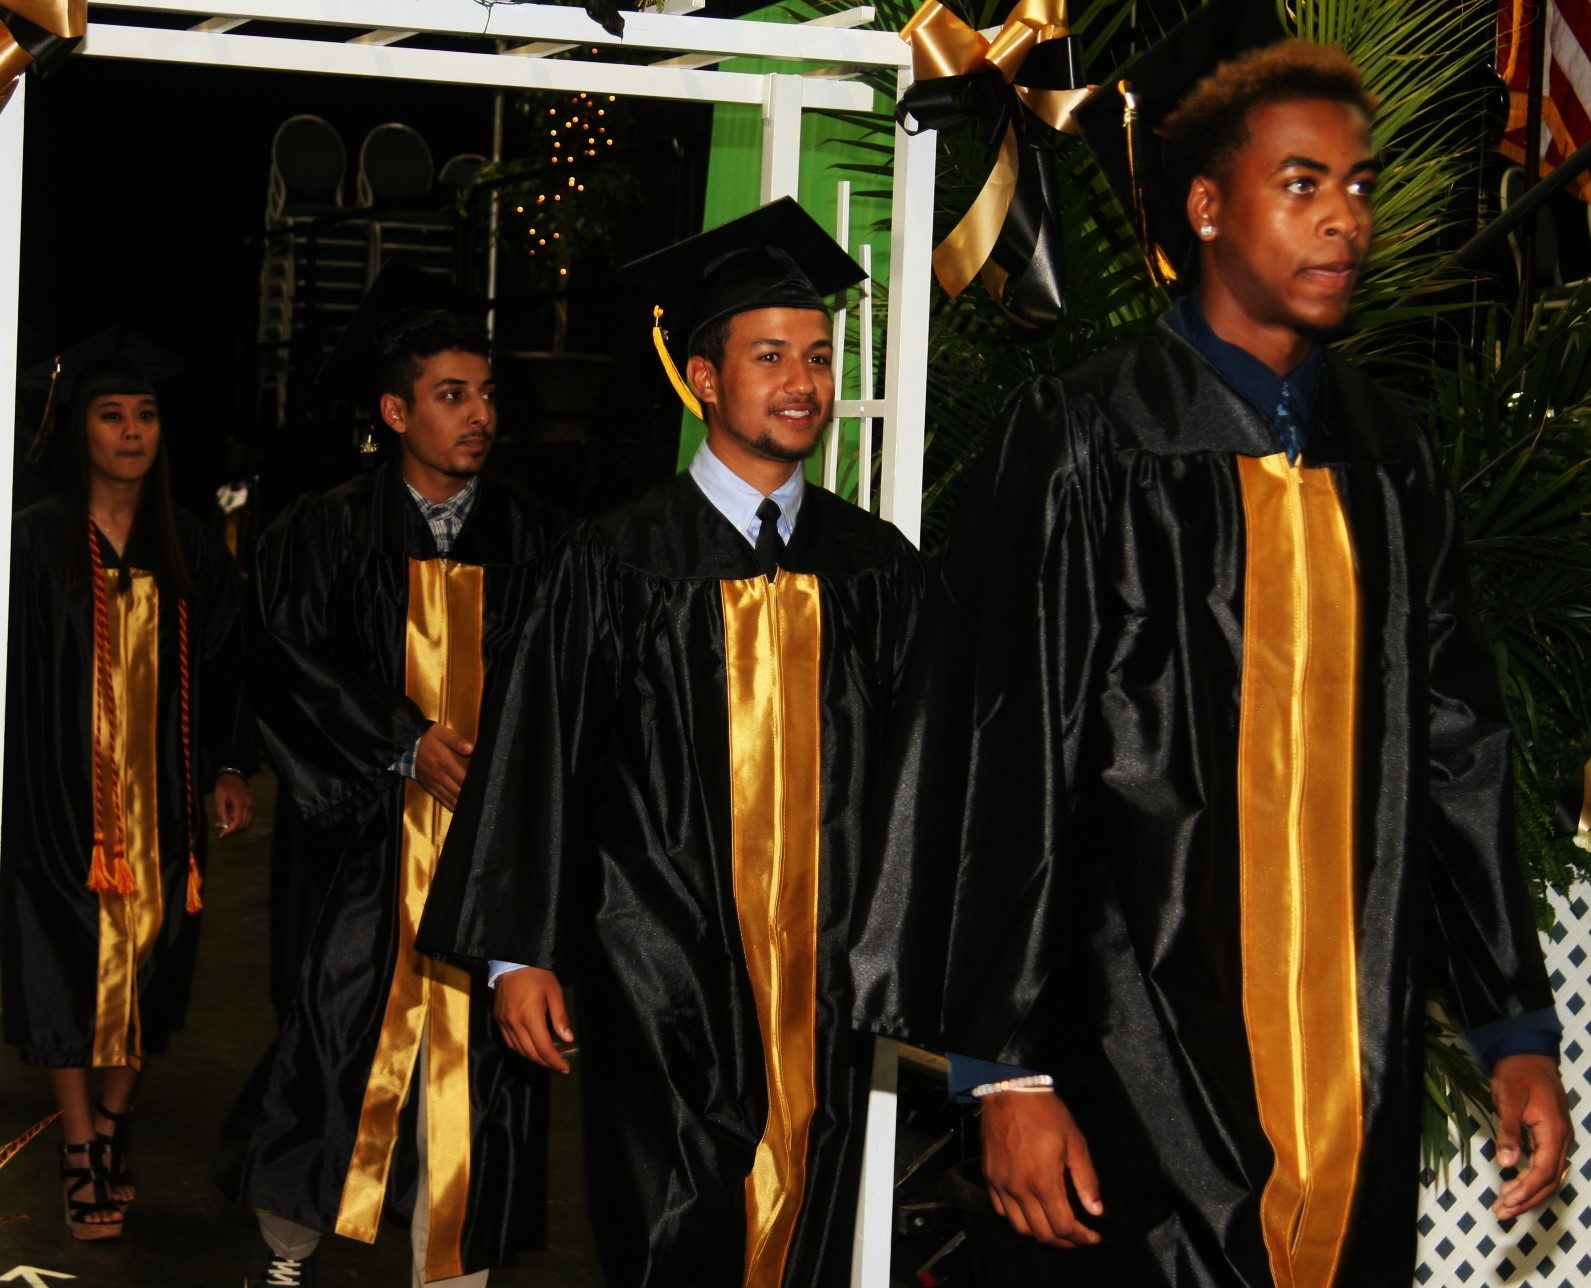 south brunswick high school graduates seniors video south brunswick high school graduates 705 seniors video south brunswick cranbury nj news tapinto